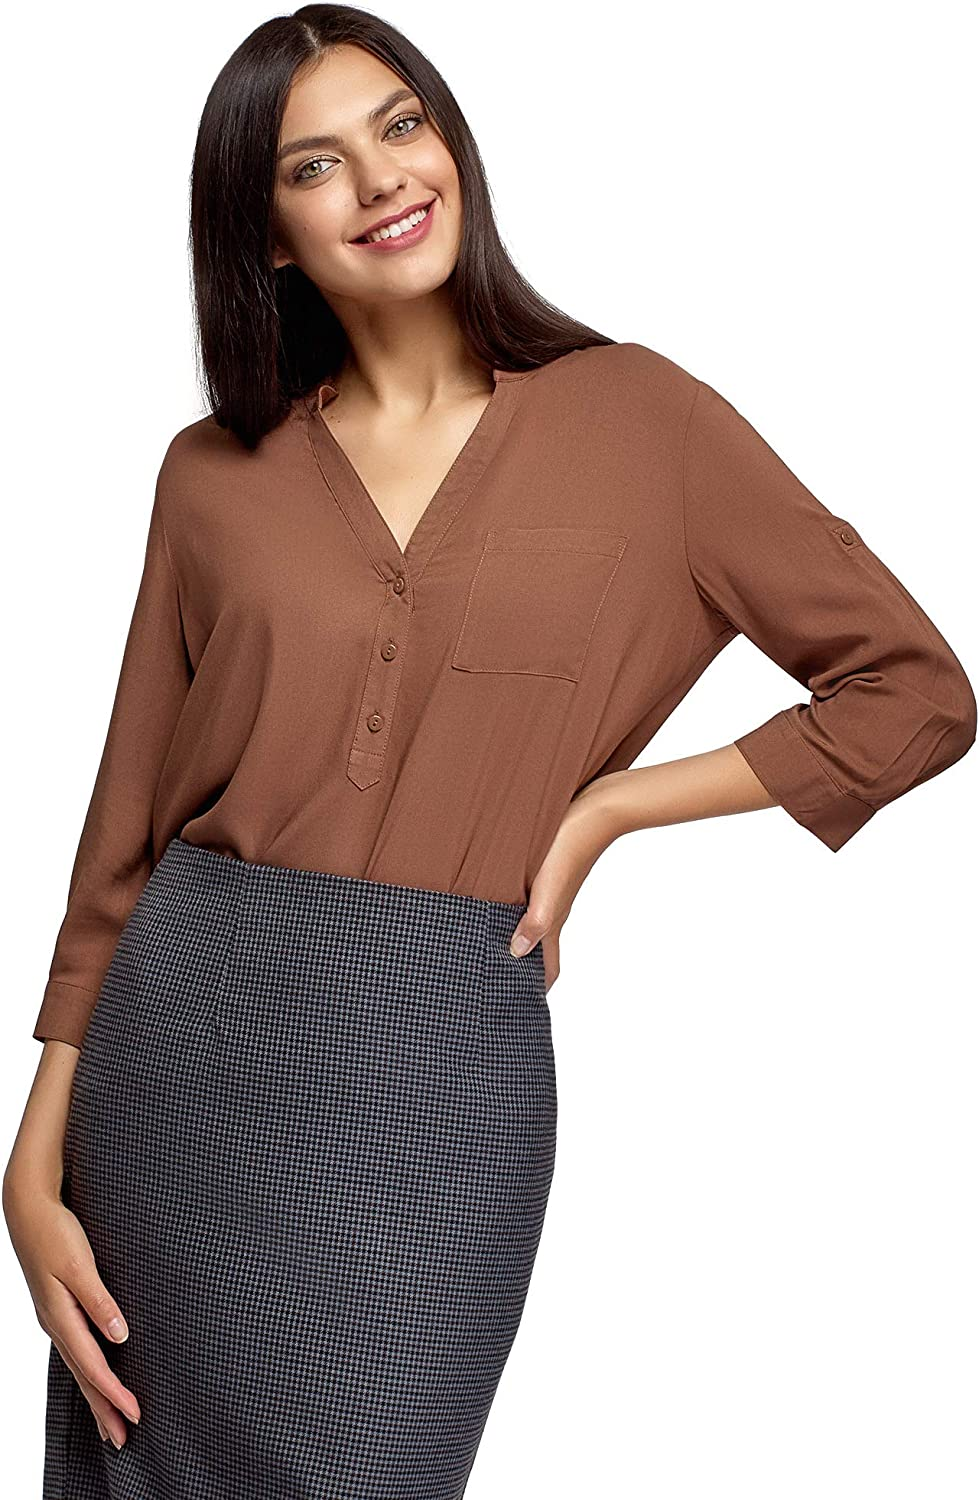 oodji Ultra Max 68% OFF Women's Viscose Blouse 4 Spring new work Adjustable Sleeves with 3